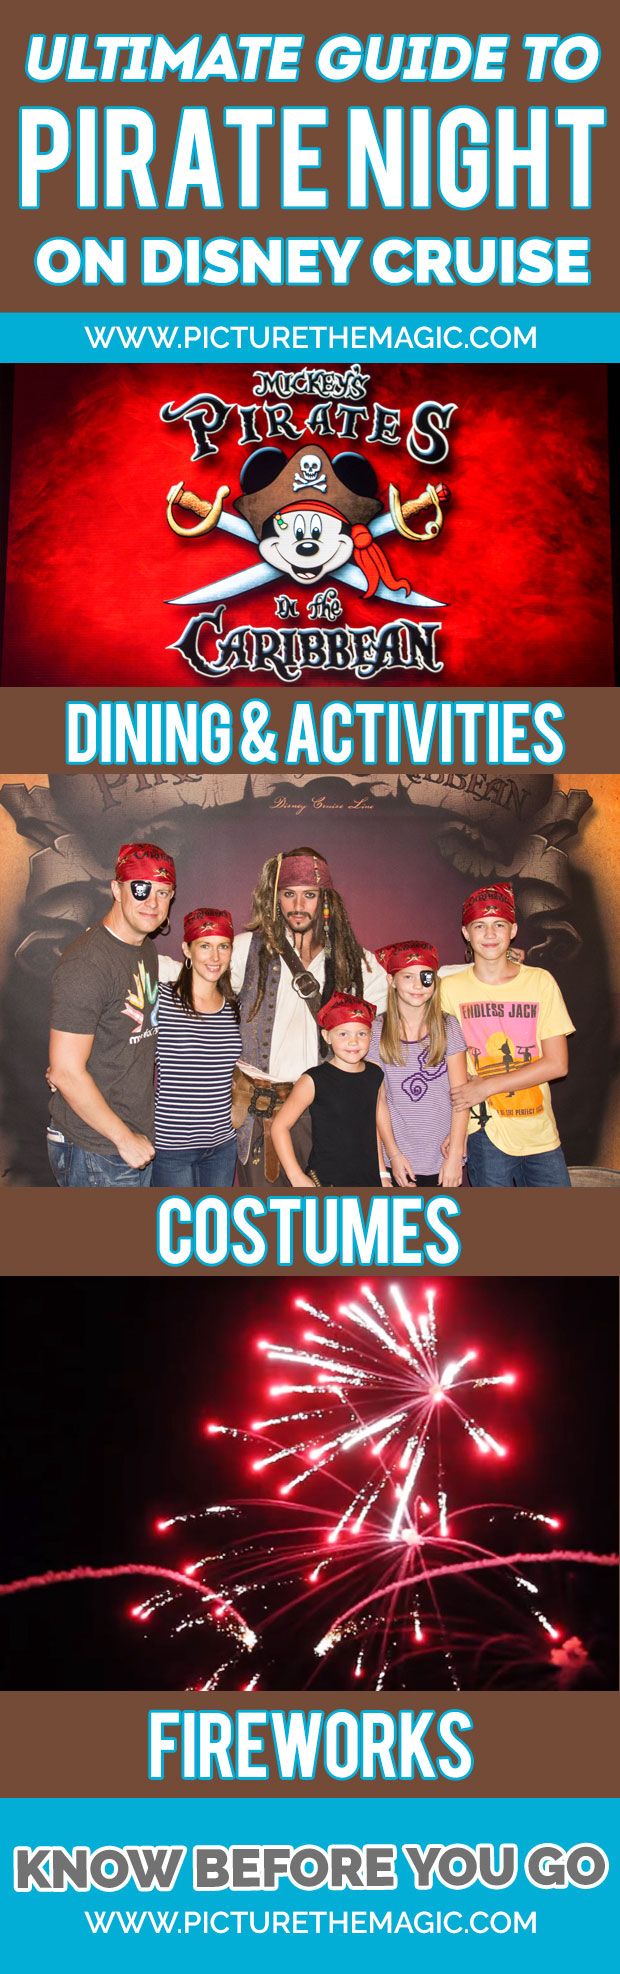 The Ultimate Guide to Disney Cruise Pirate Night!